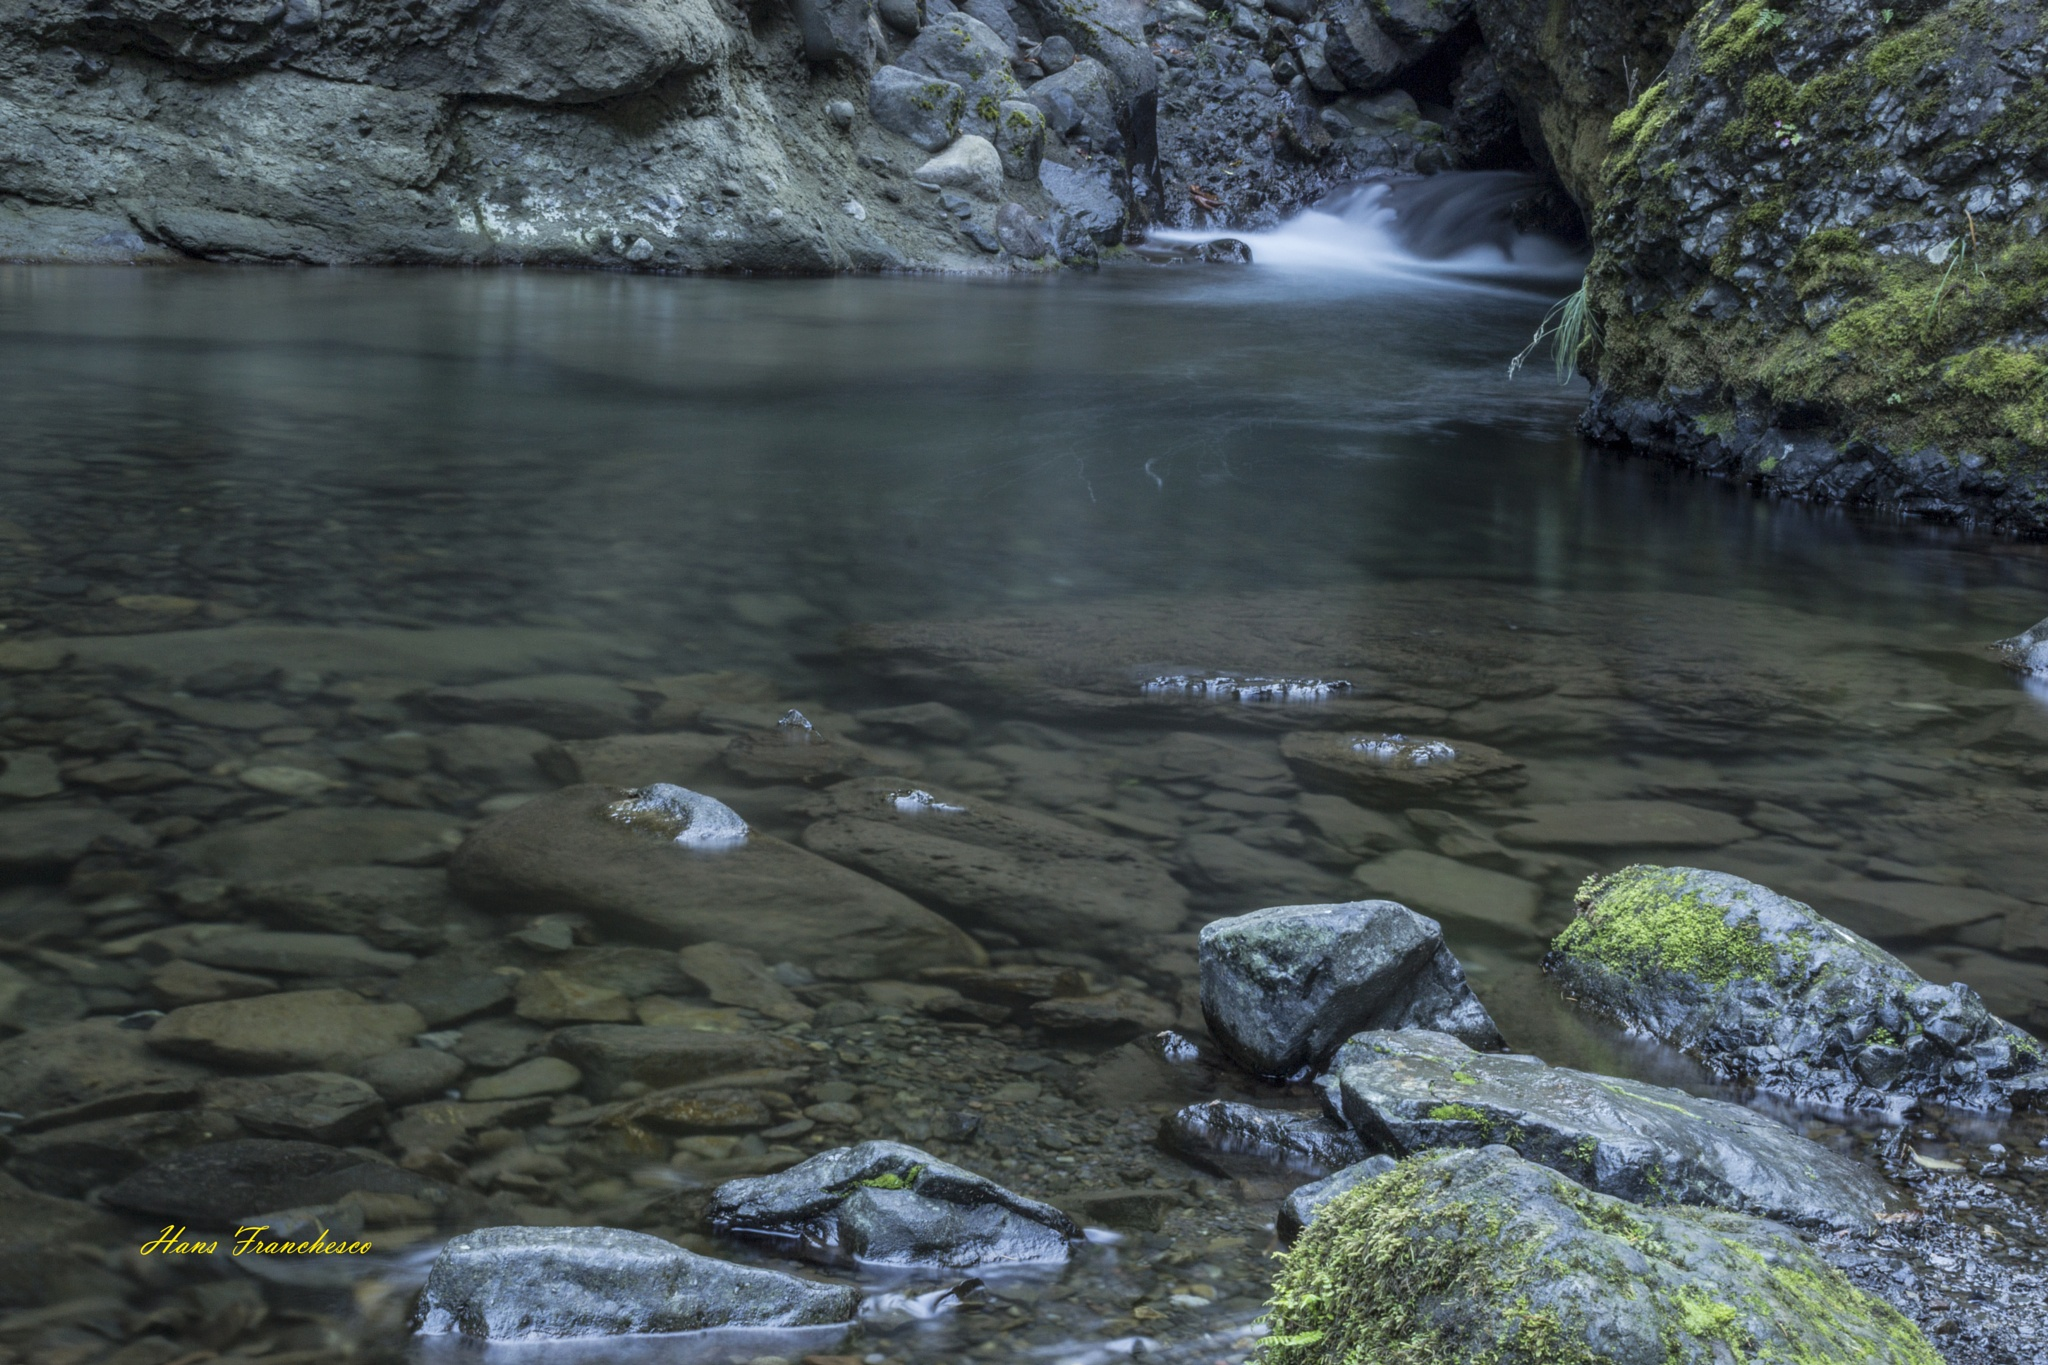 Rock pool by Hans Franchesco